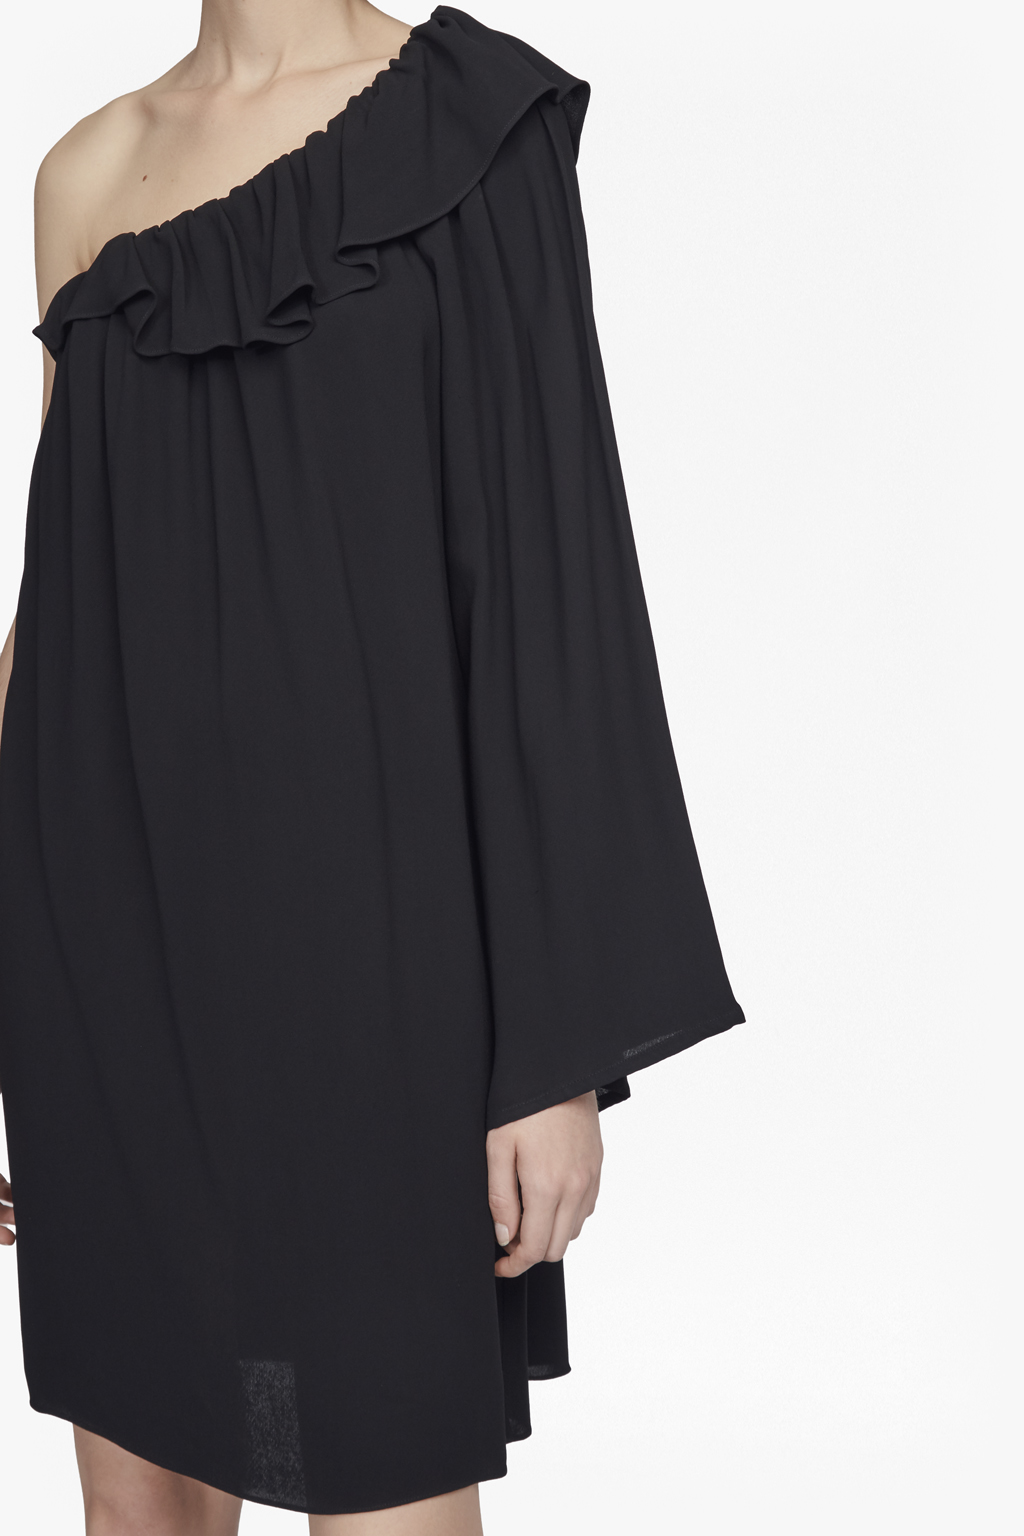 Black one shoulder dresses